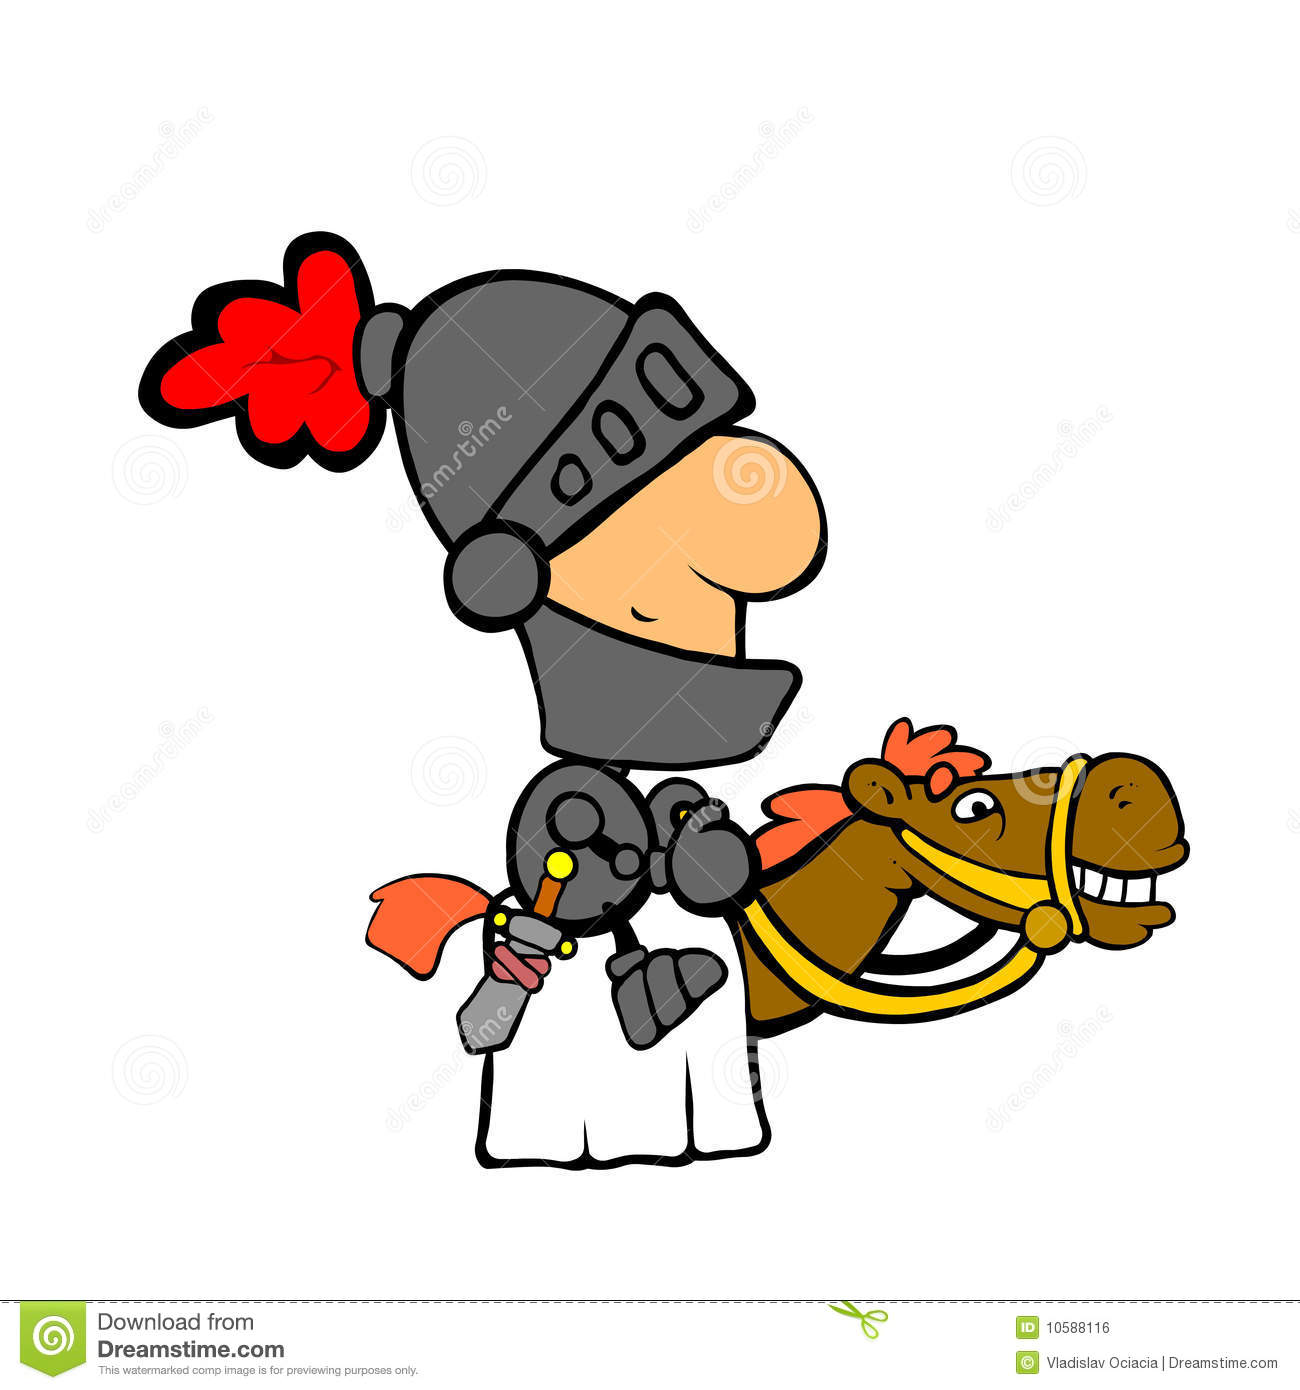 Ritter auf pferd clipart image library stock Ritter Auf Pferd Lizenzfreies Stockbild - Bild: 10588116 image library stock